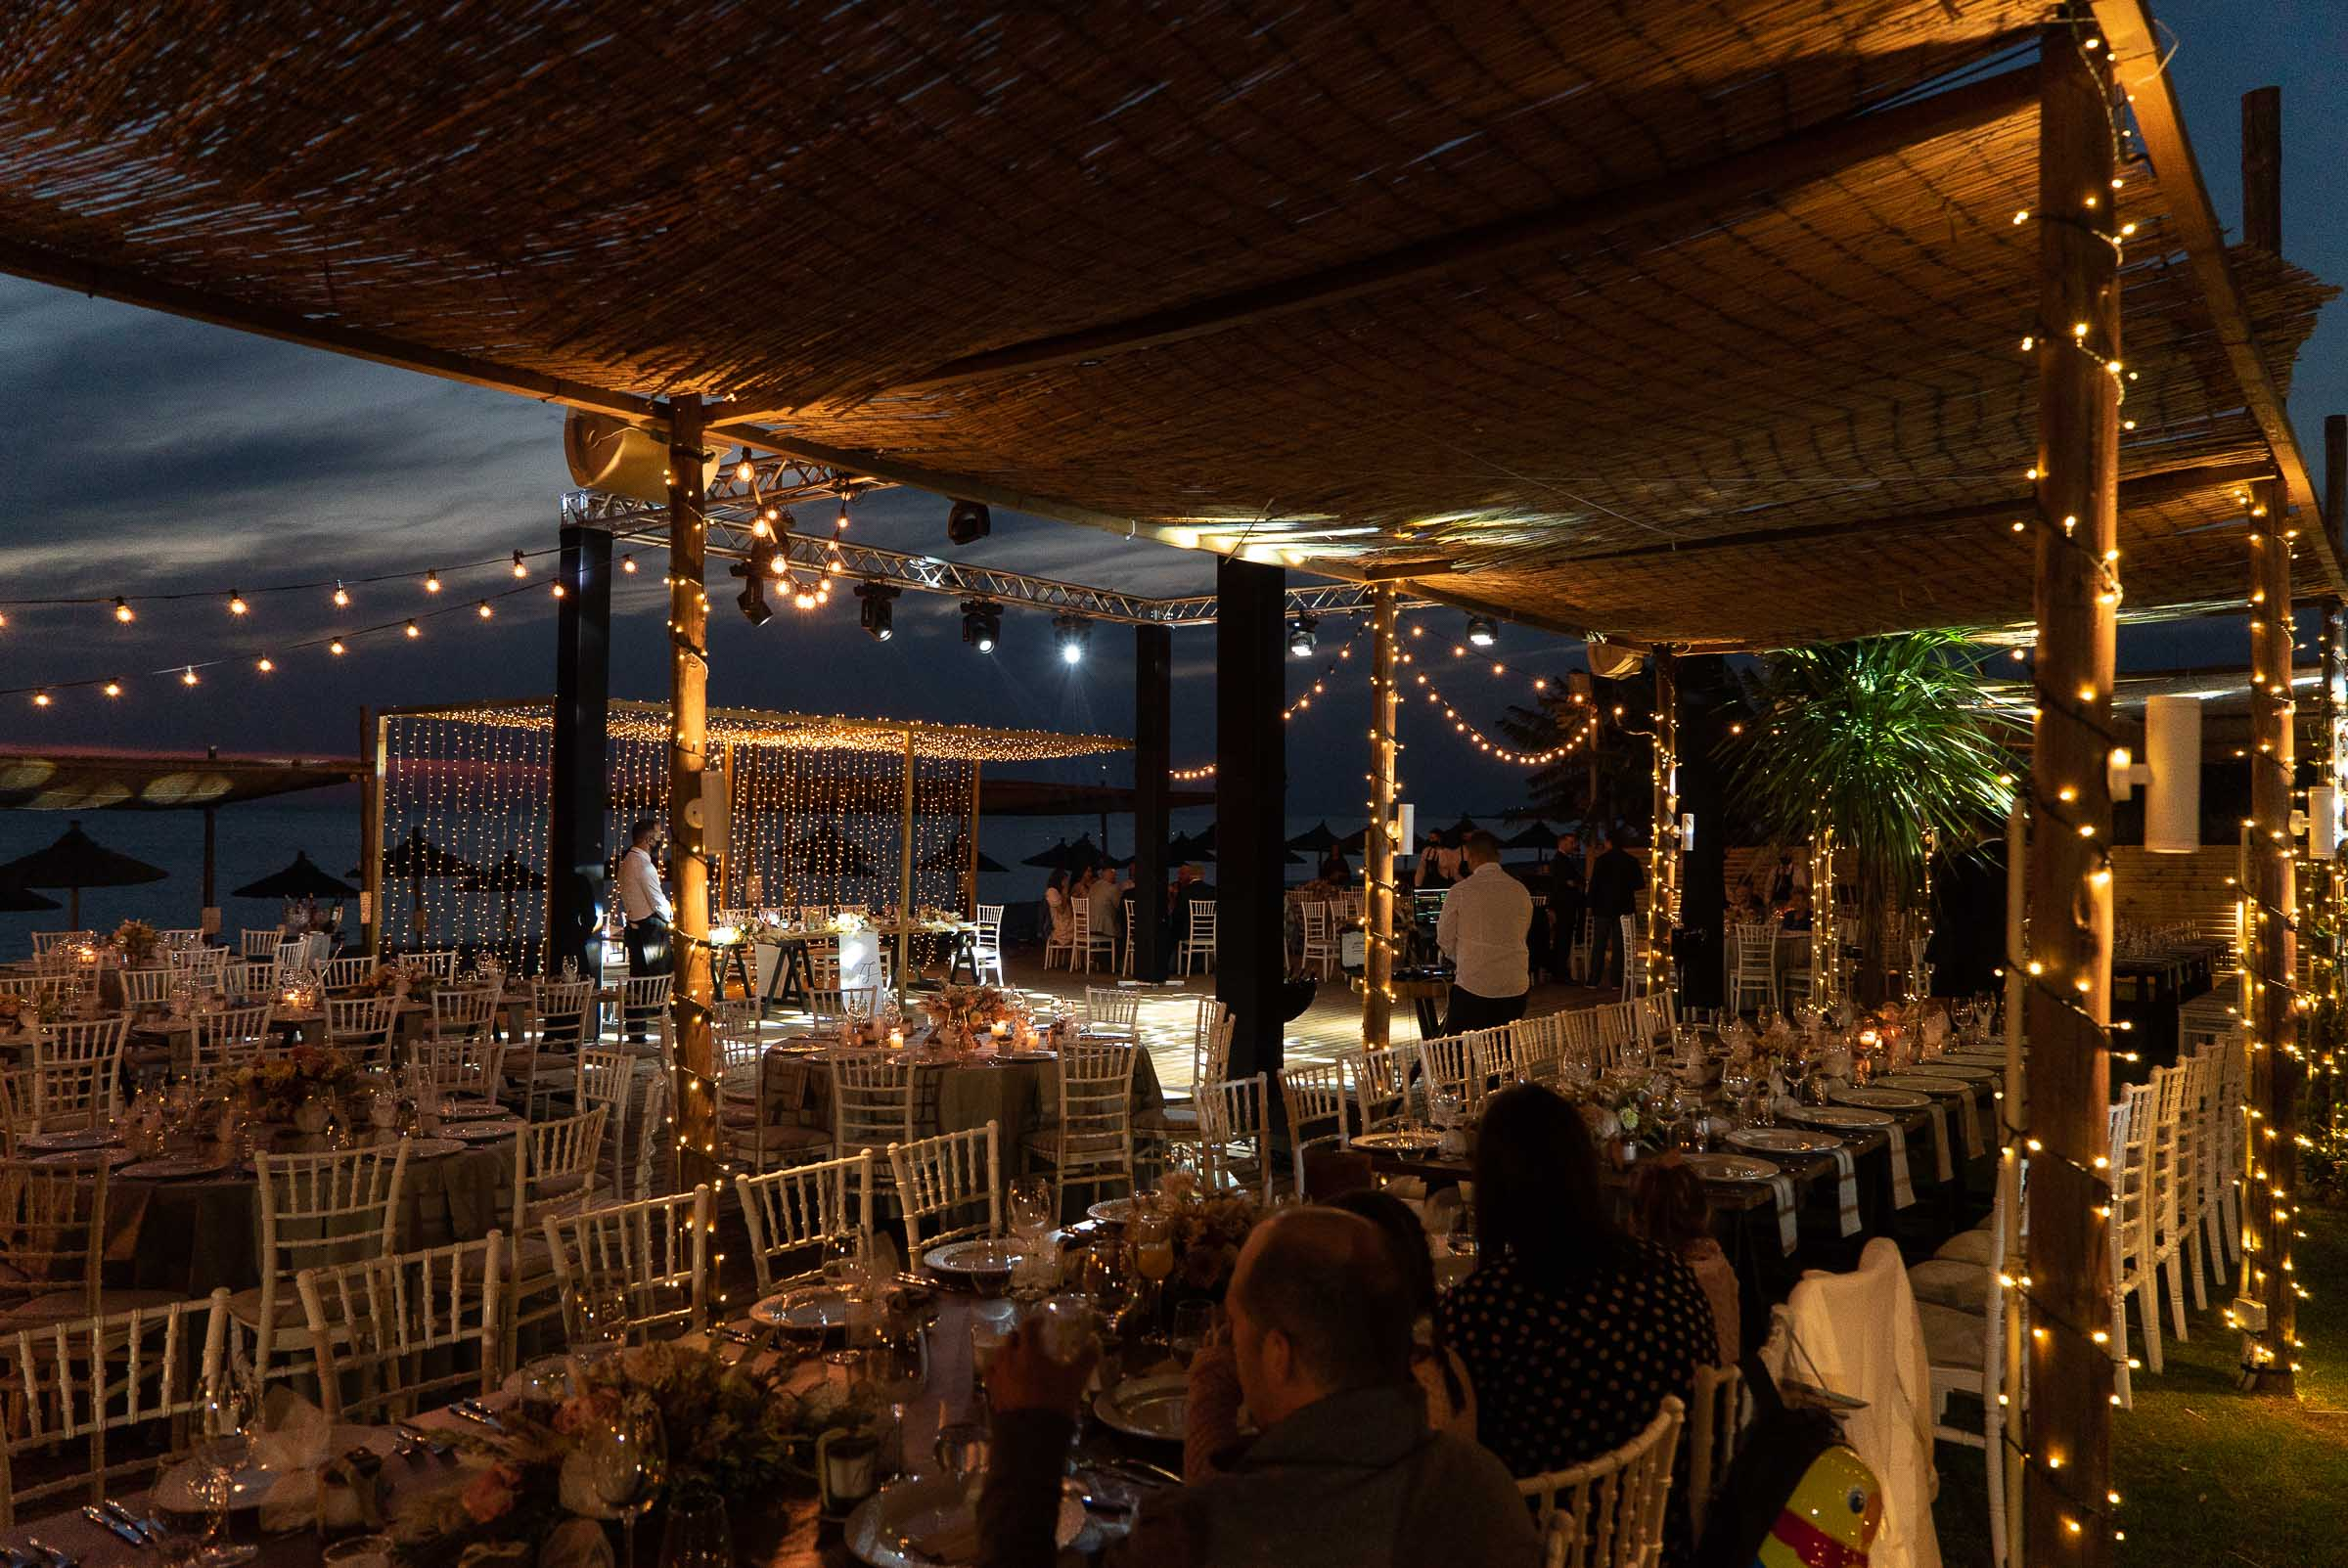 Fairy lights in a wedding event